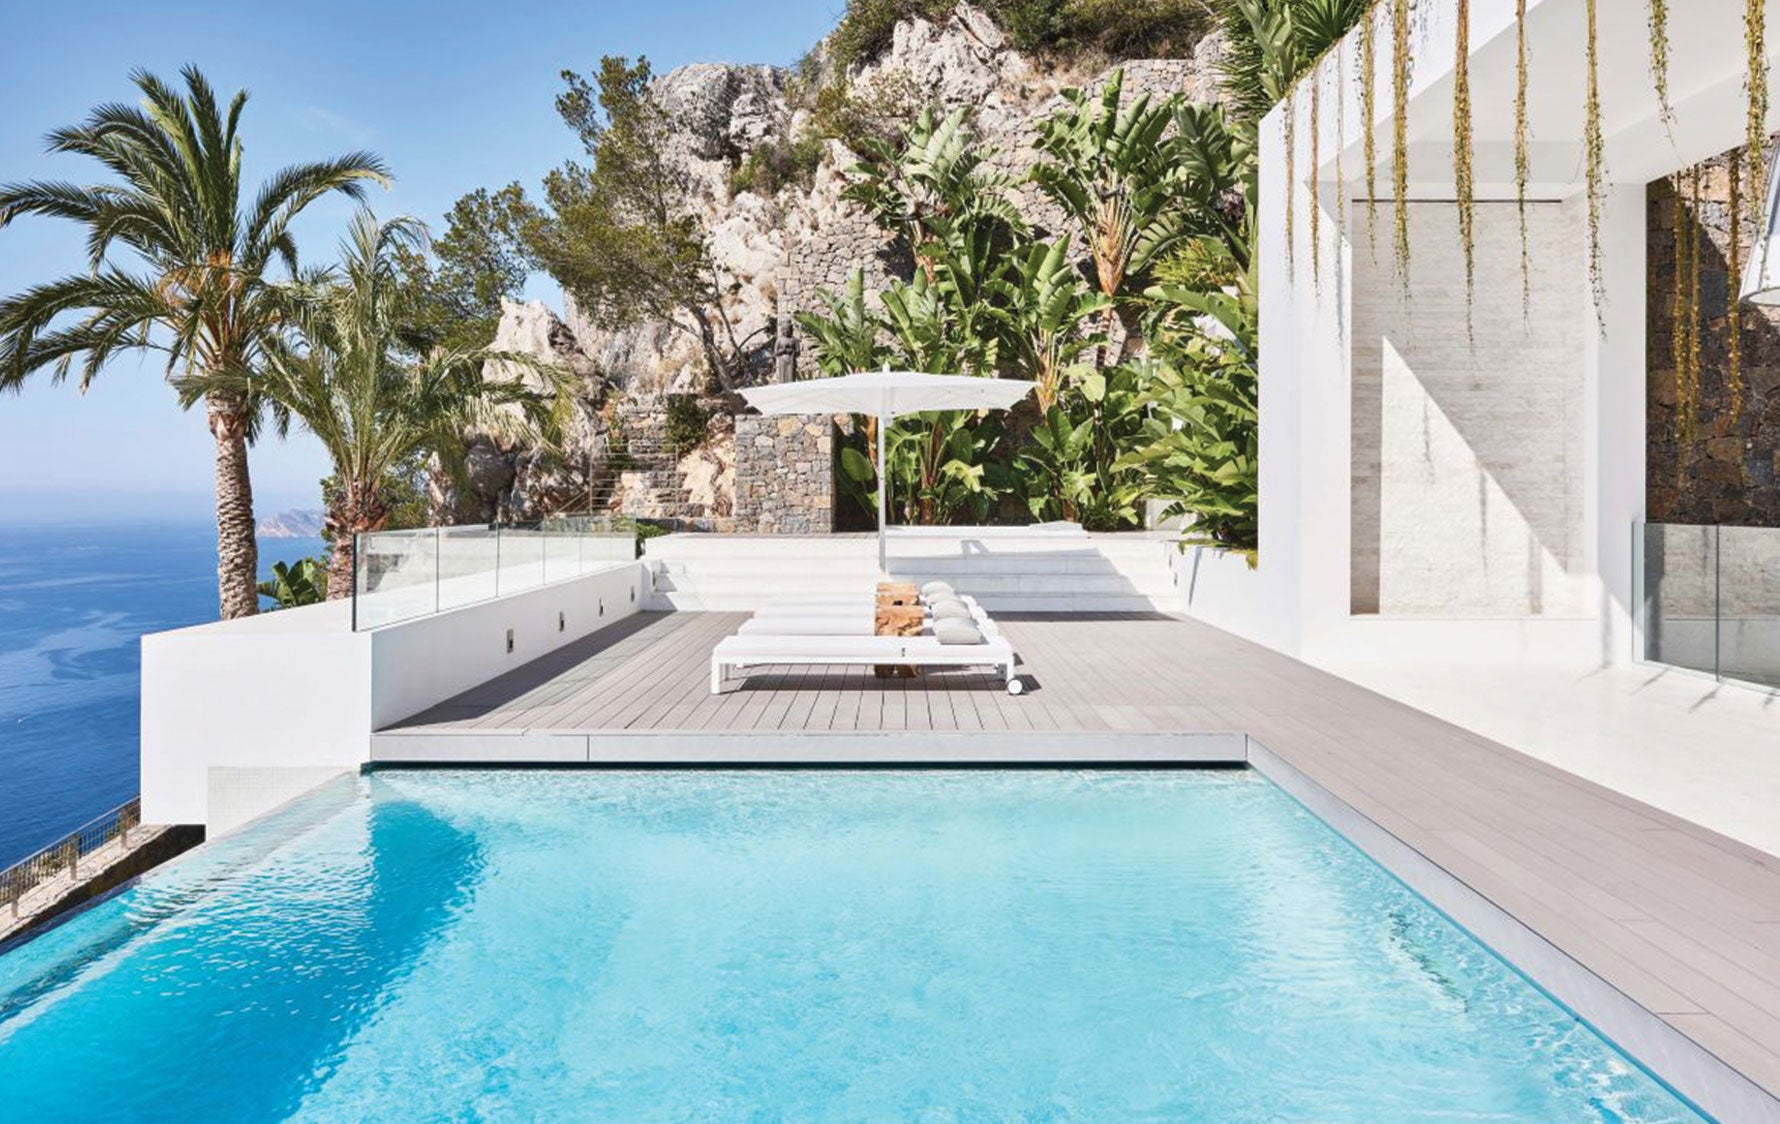 Spanish Villa Sun Loungers, Outdoor Space Ideas | Eric Kuster | Read more in The Luxurist | LuxDeco.com